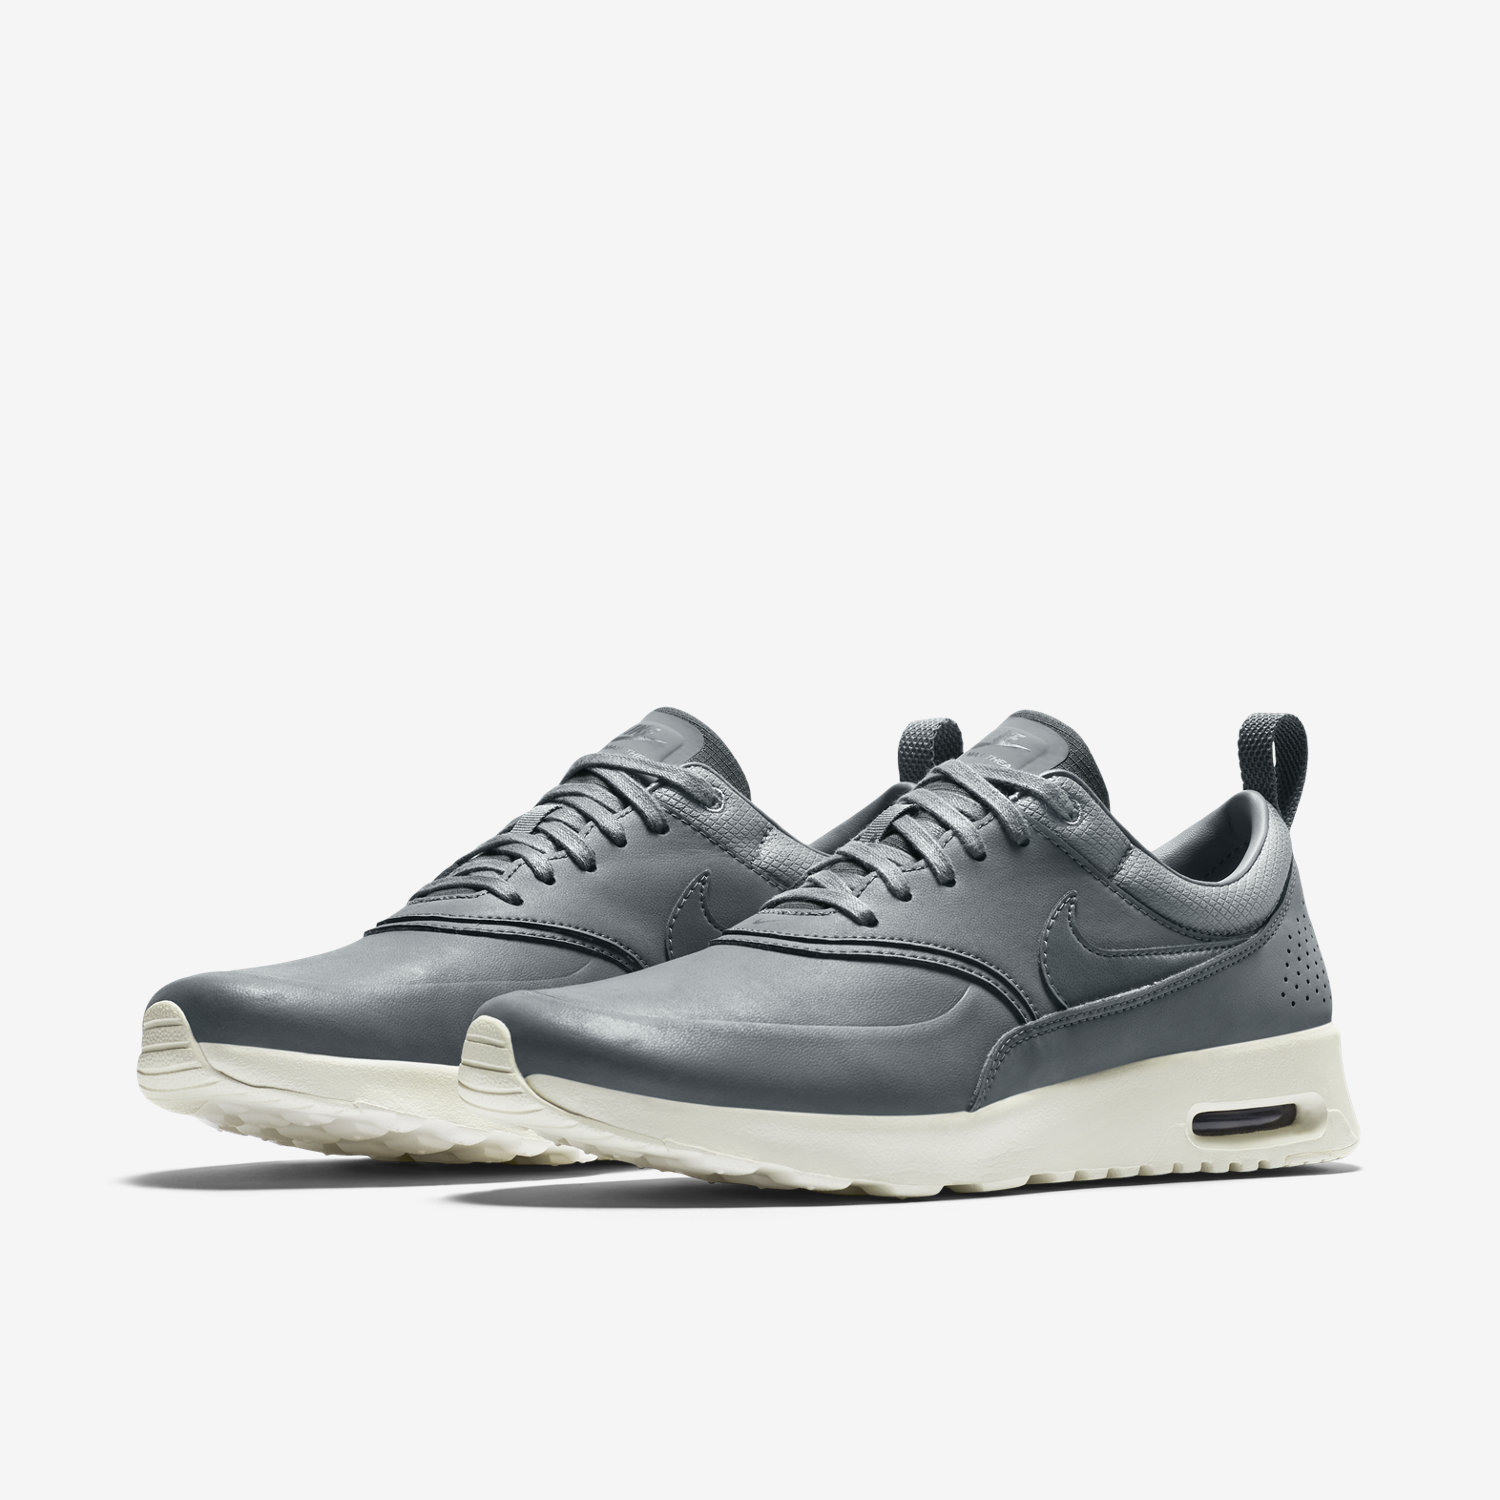 Cheap Nike Air Max 180 Black Silver TLR